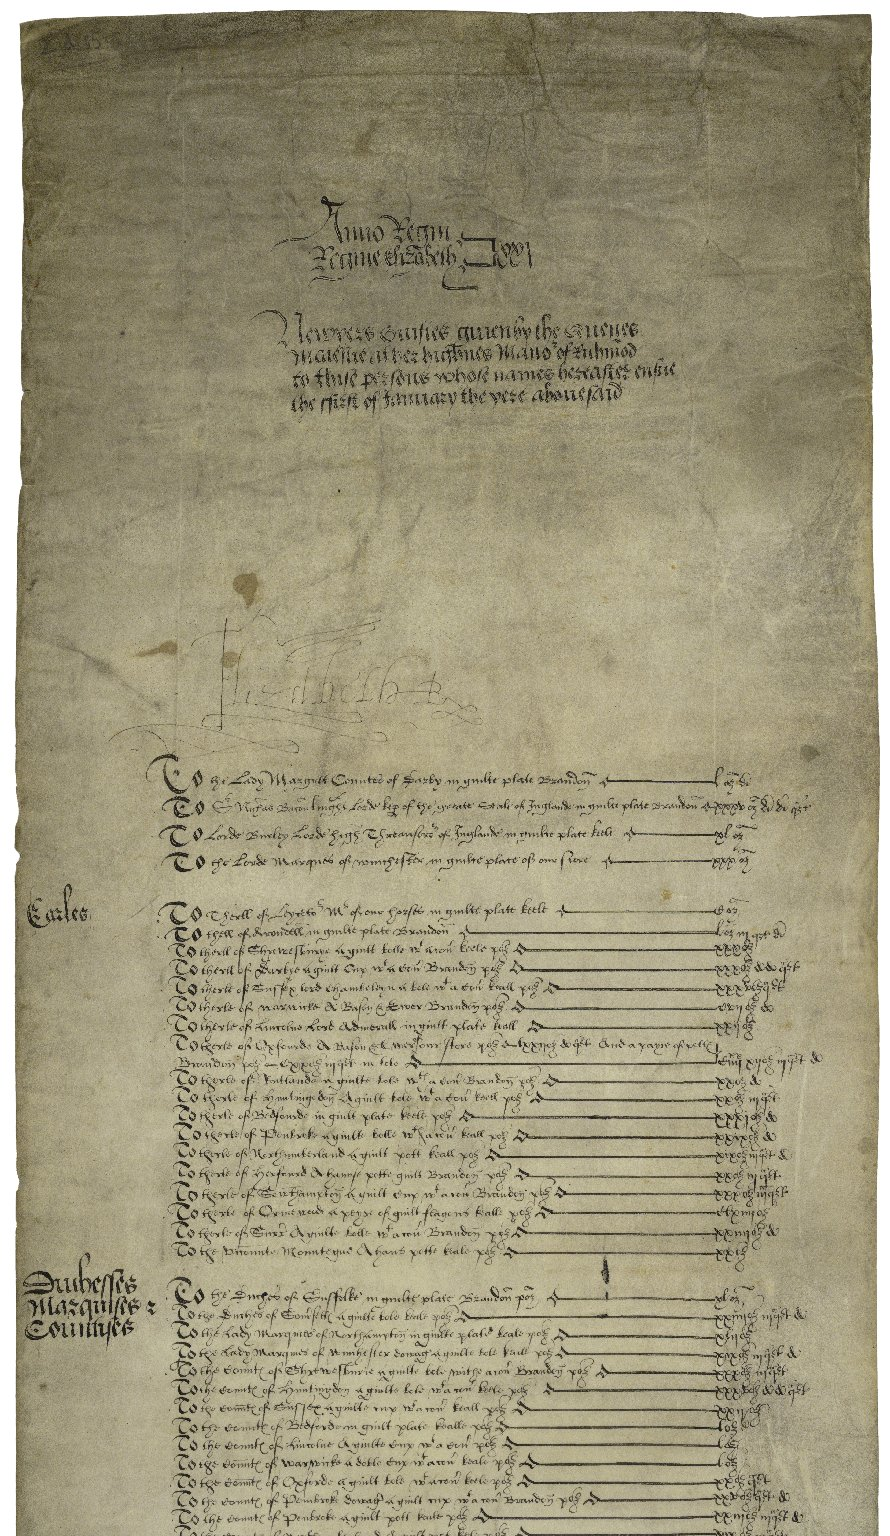 New Year's gift roll of Elizabeth I, Queen of England [manuscript], 1578/9 January 1.